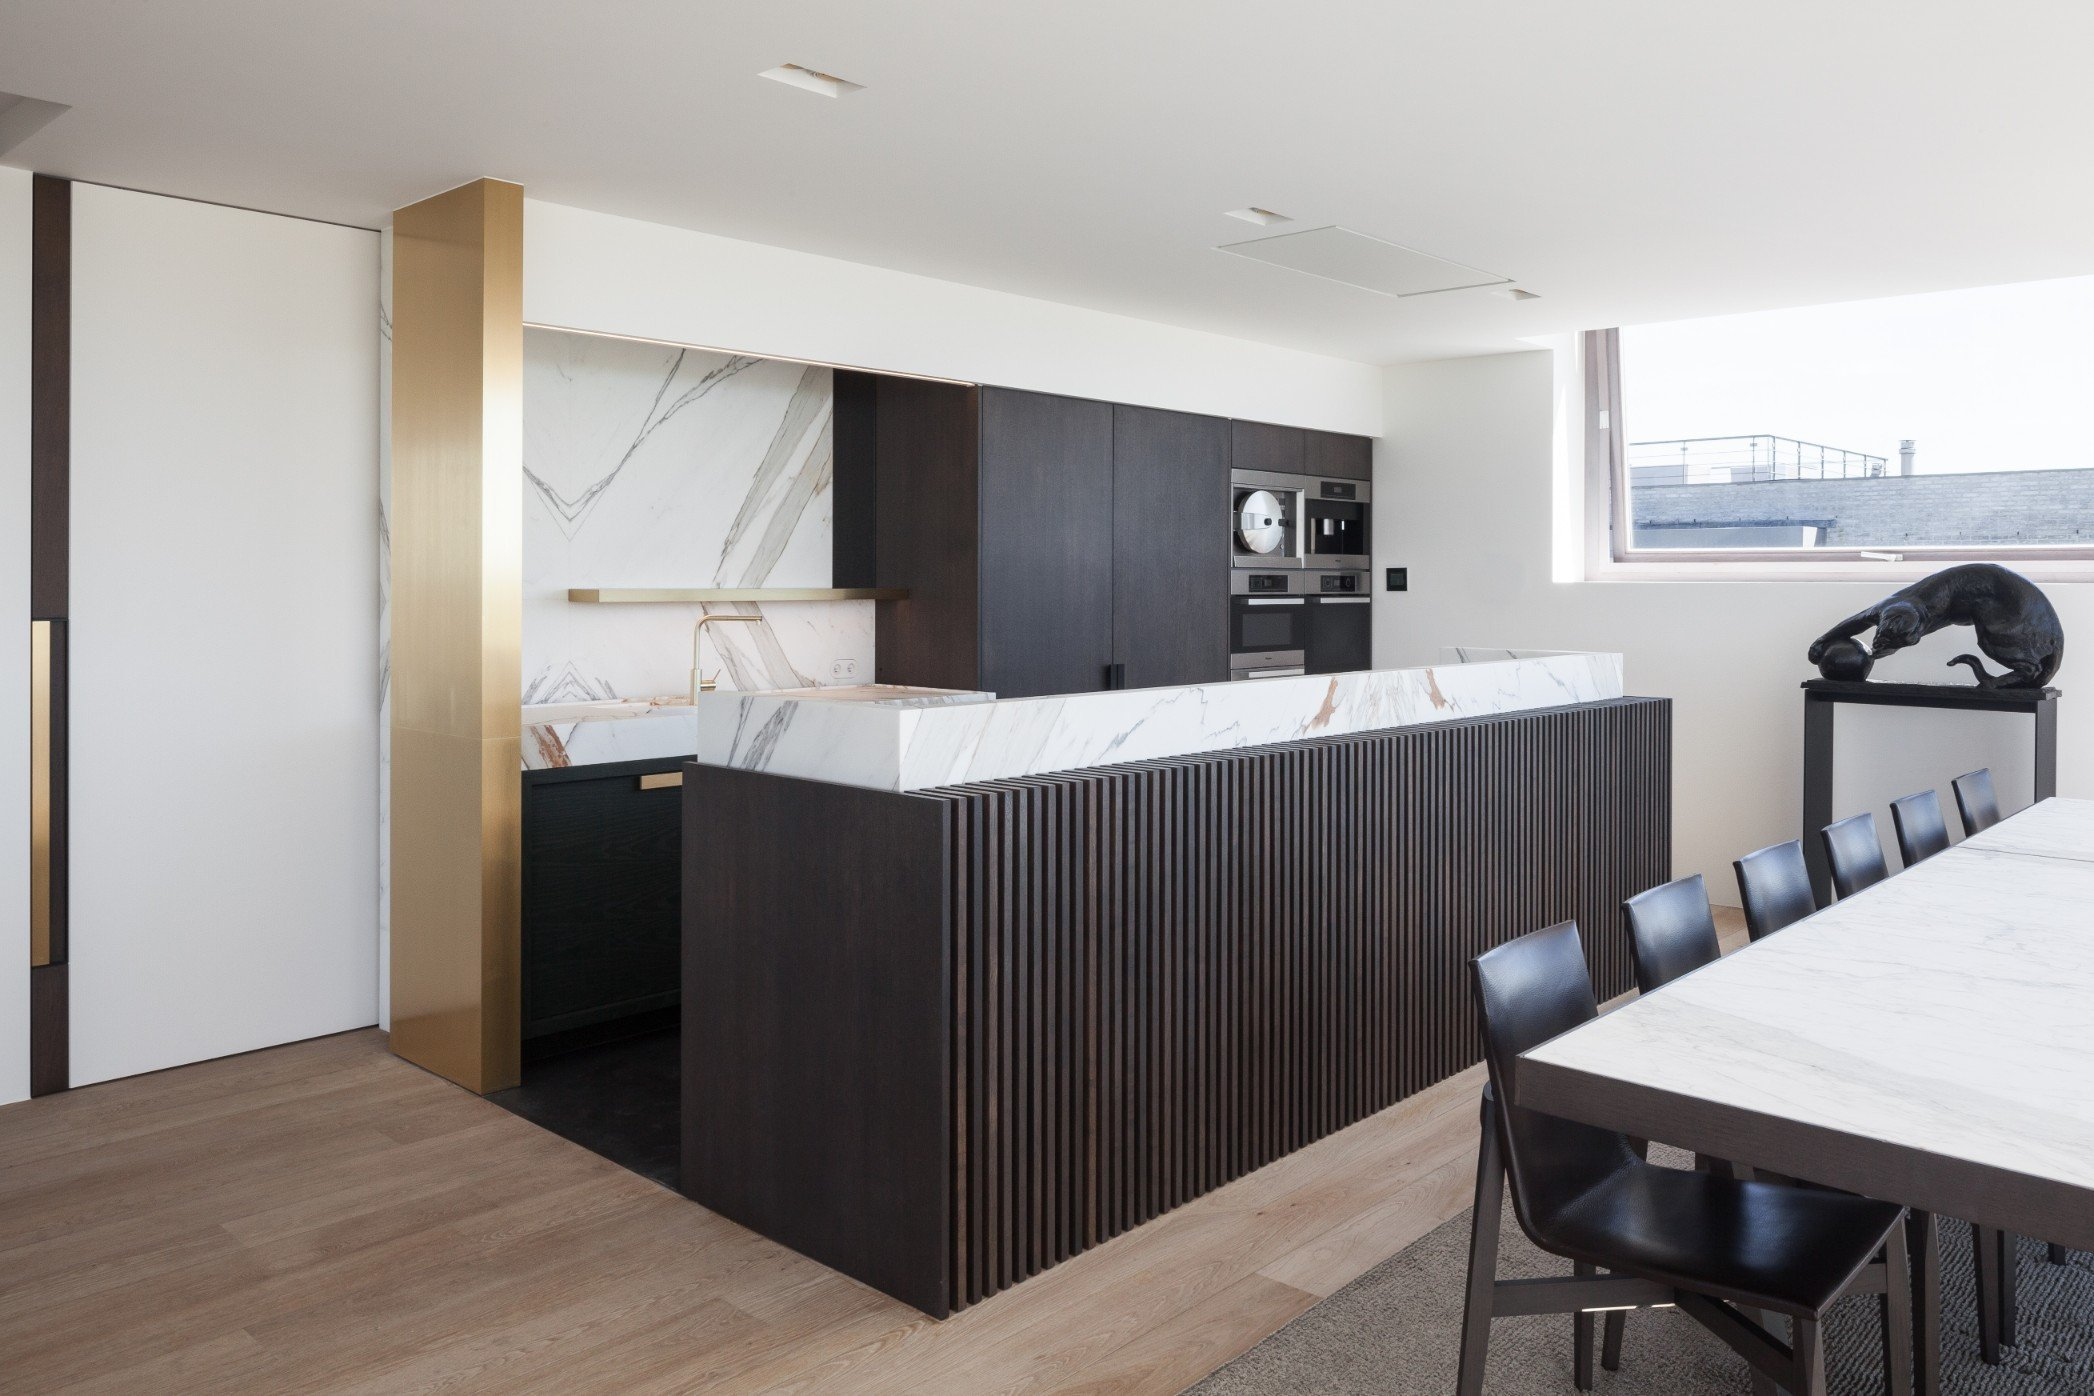 Rietveldprojects-penthouse-appartement-design-architectuur-kust